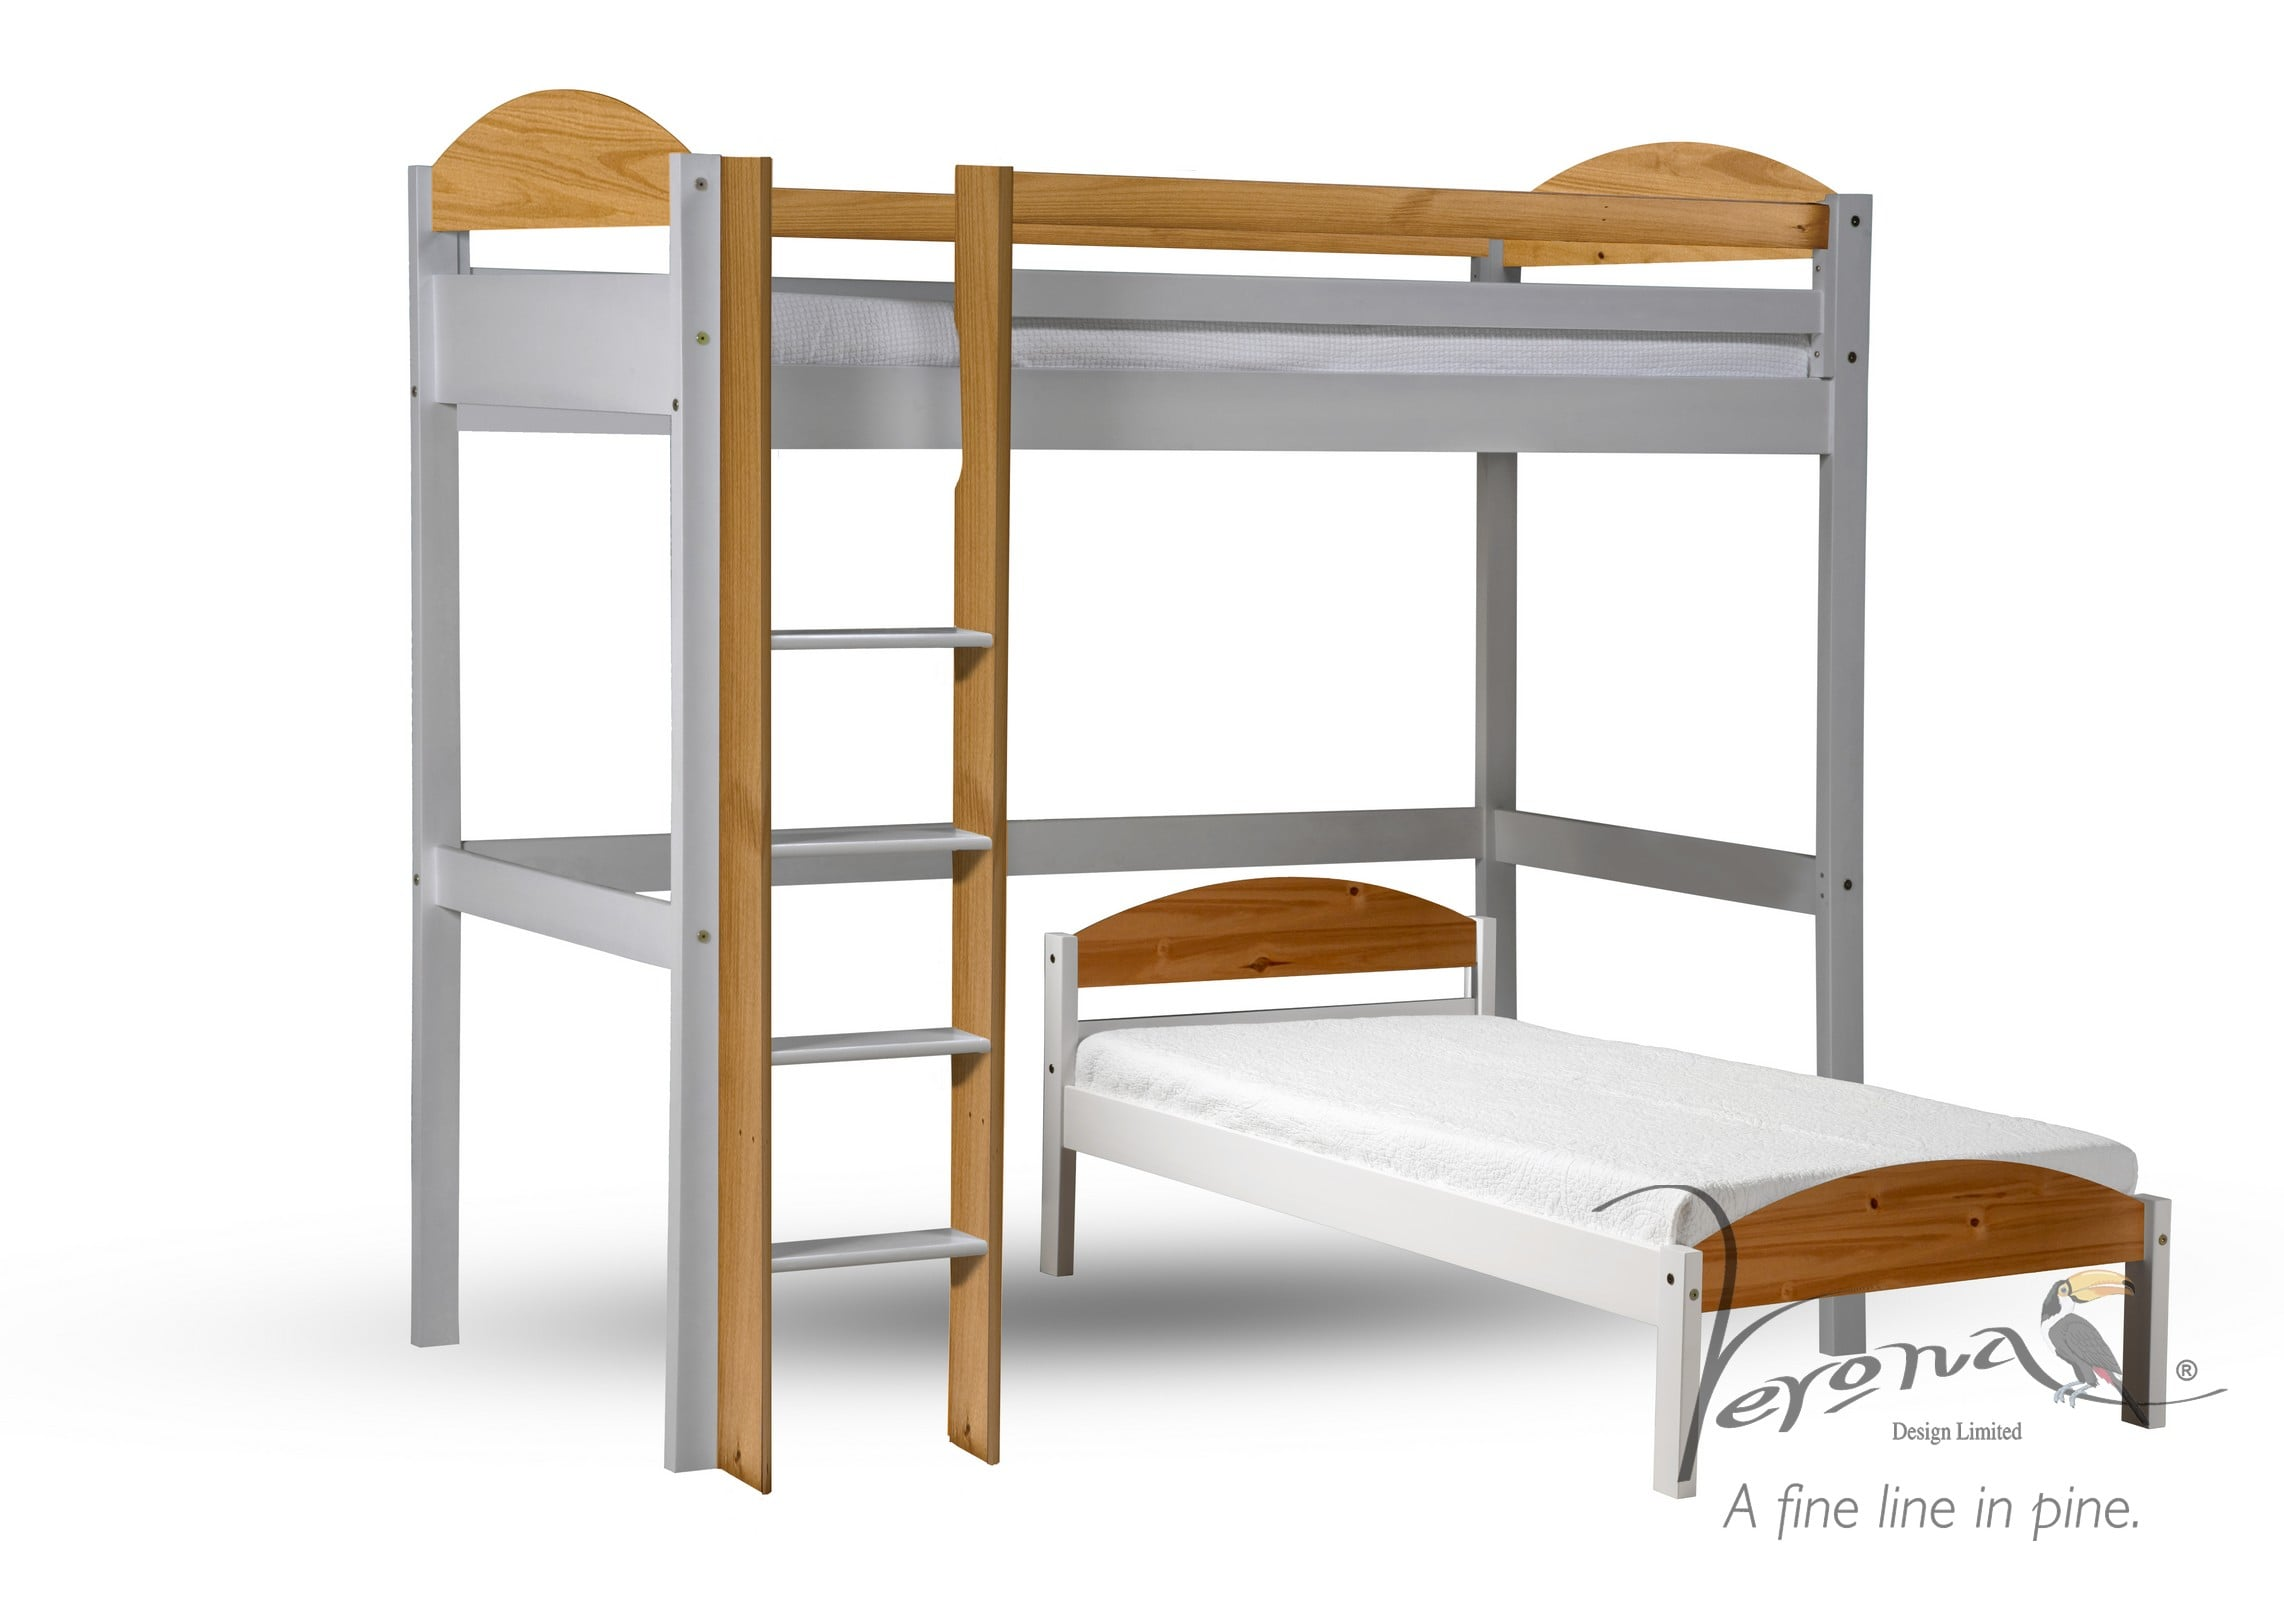 Maximus L Shaped High Sleeper - White Frame only